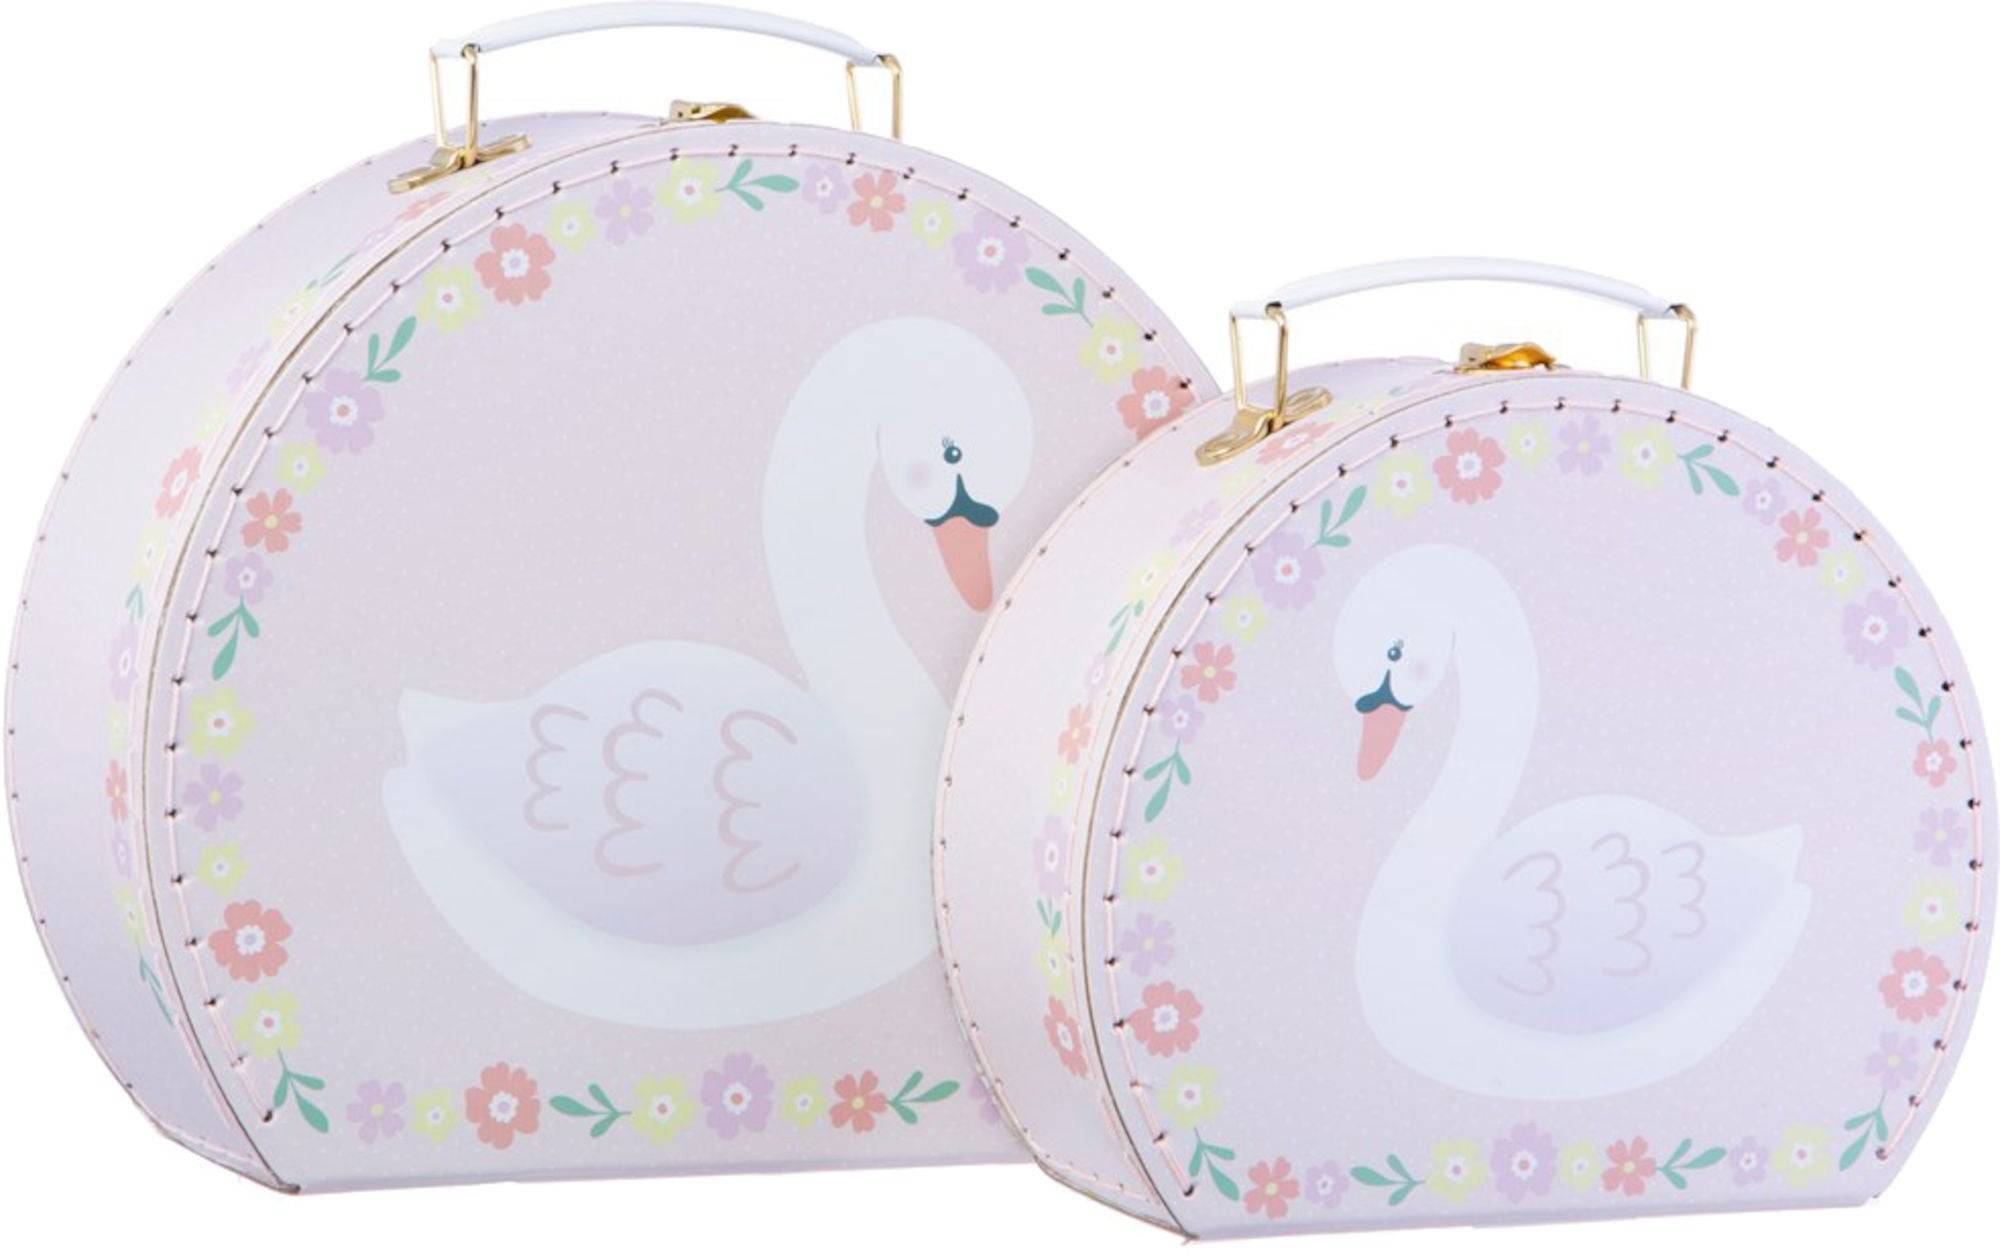 Sass & Belle Sass & Belle Pappkoffert Pink Floral Suitcases 2-pack